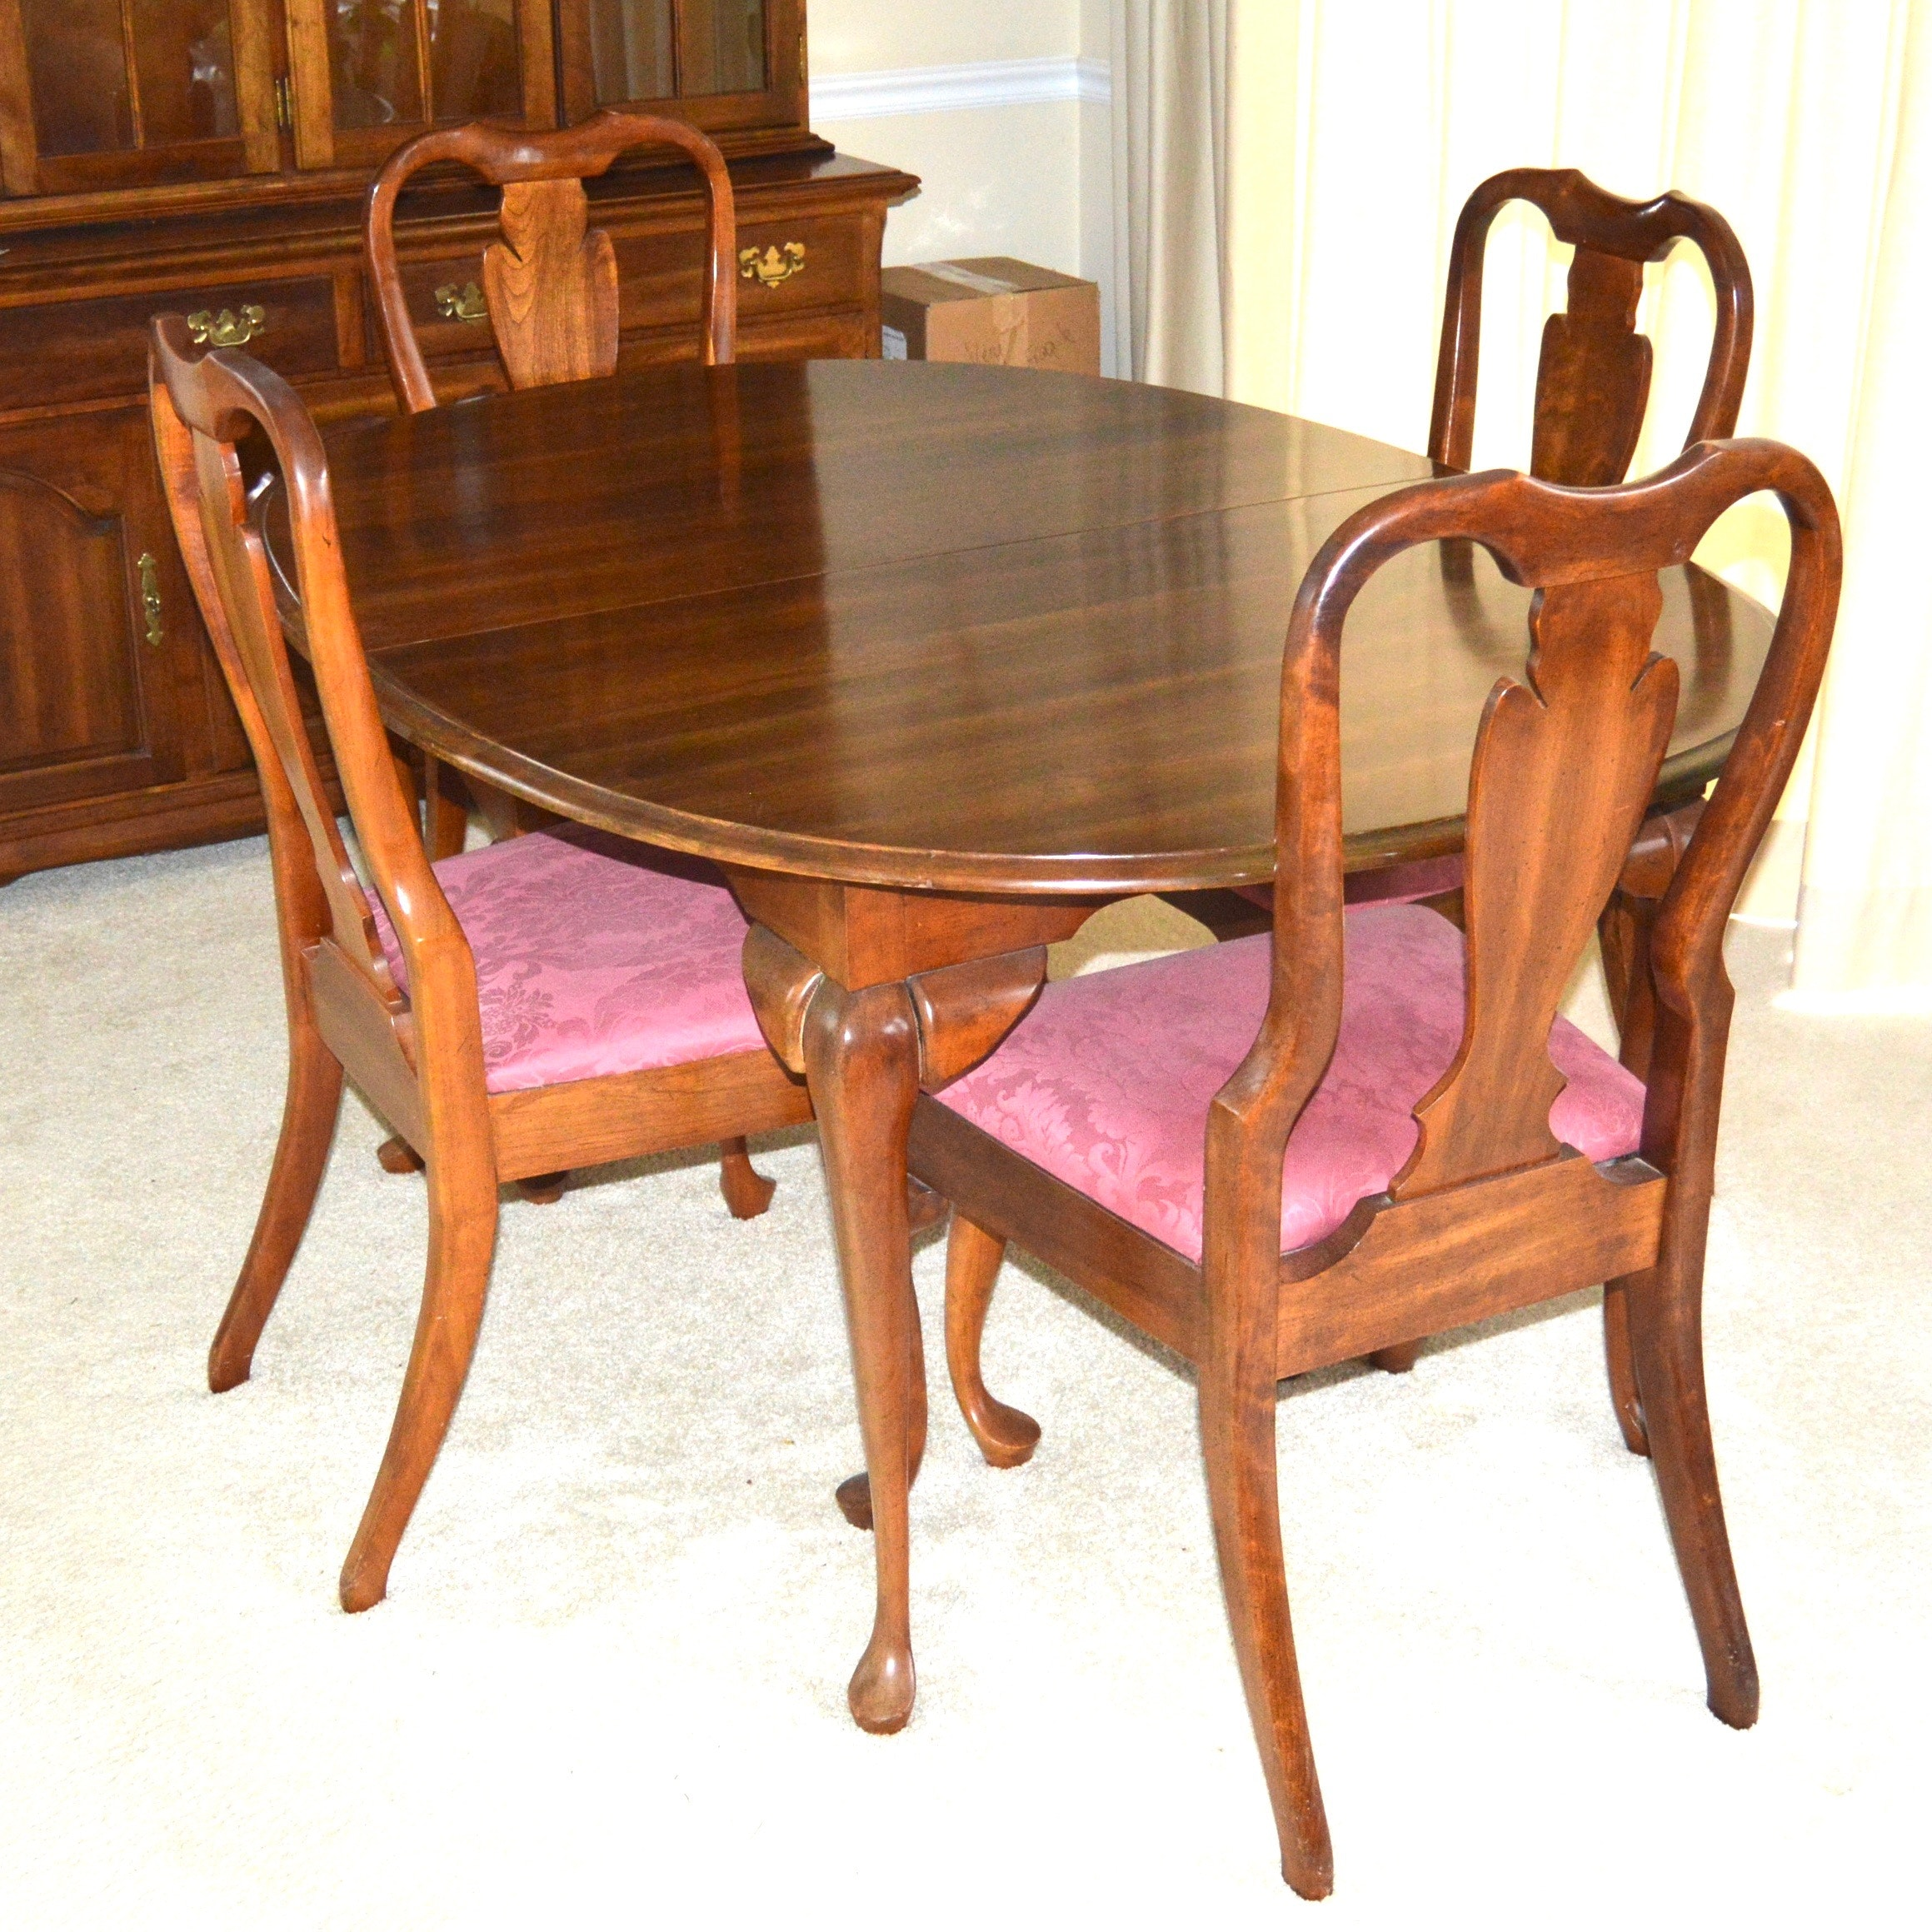 Queen Anne Style Dining Table and Chairs by Cresent Furniture